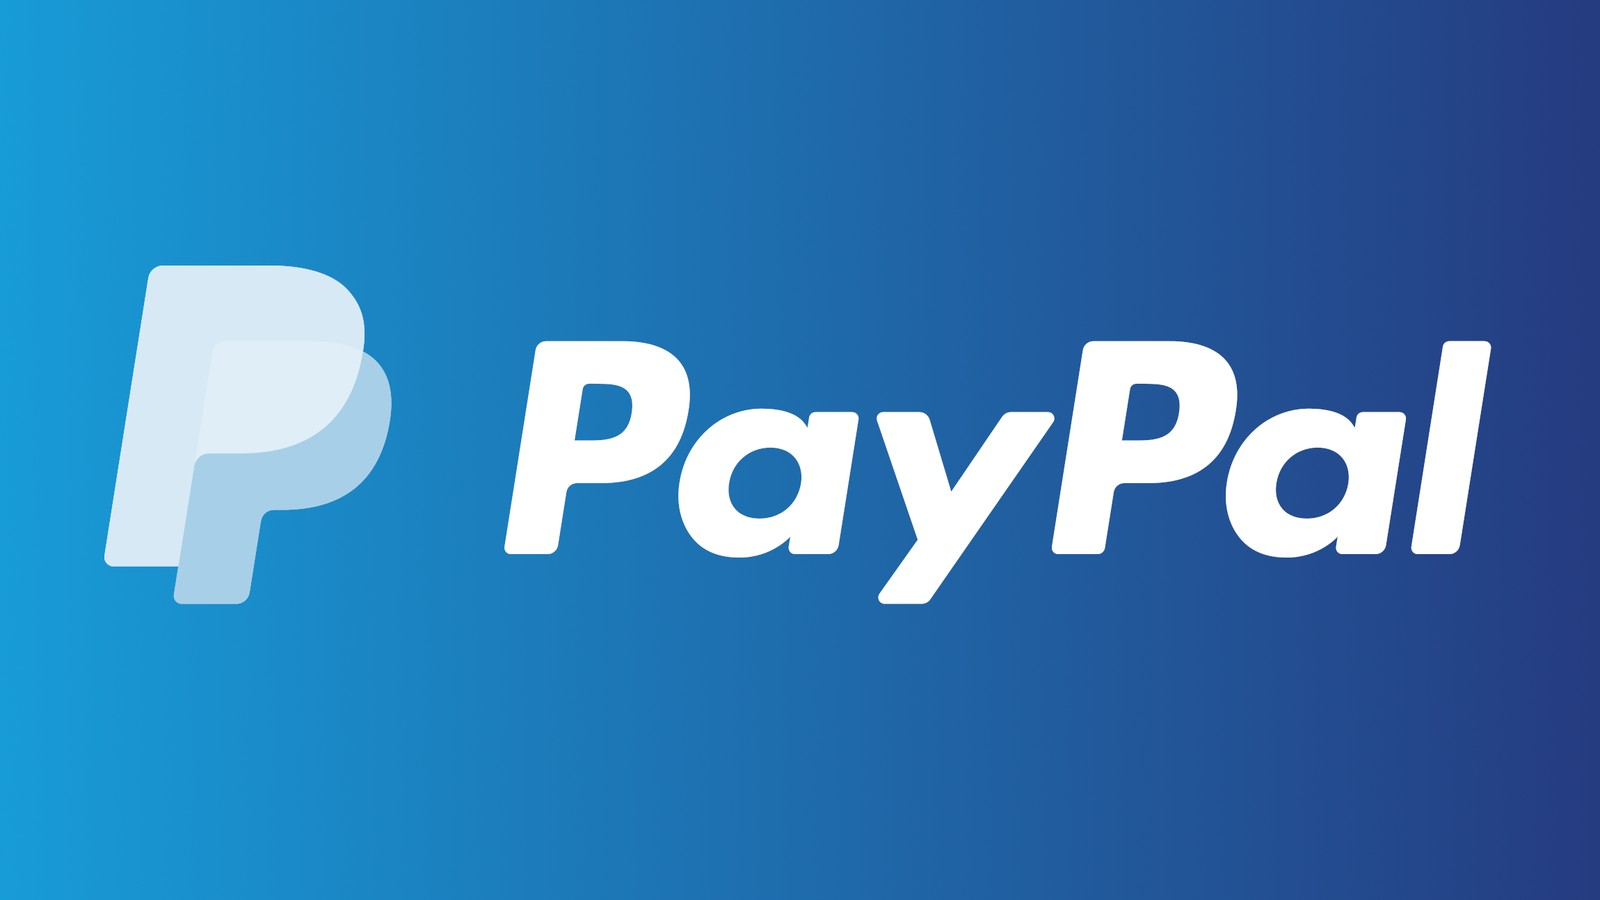 PayPal 2FA Authenticator